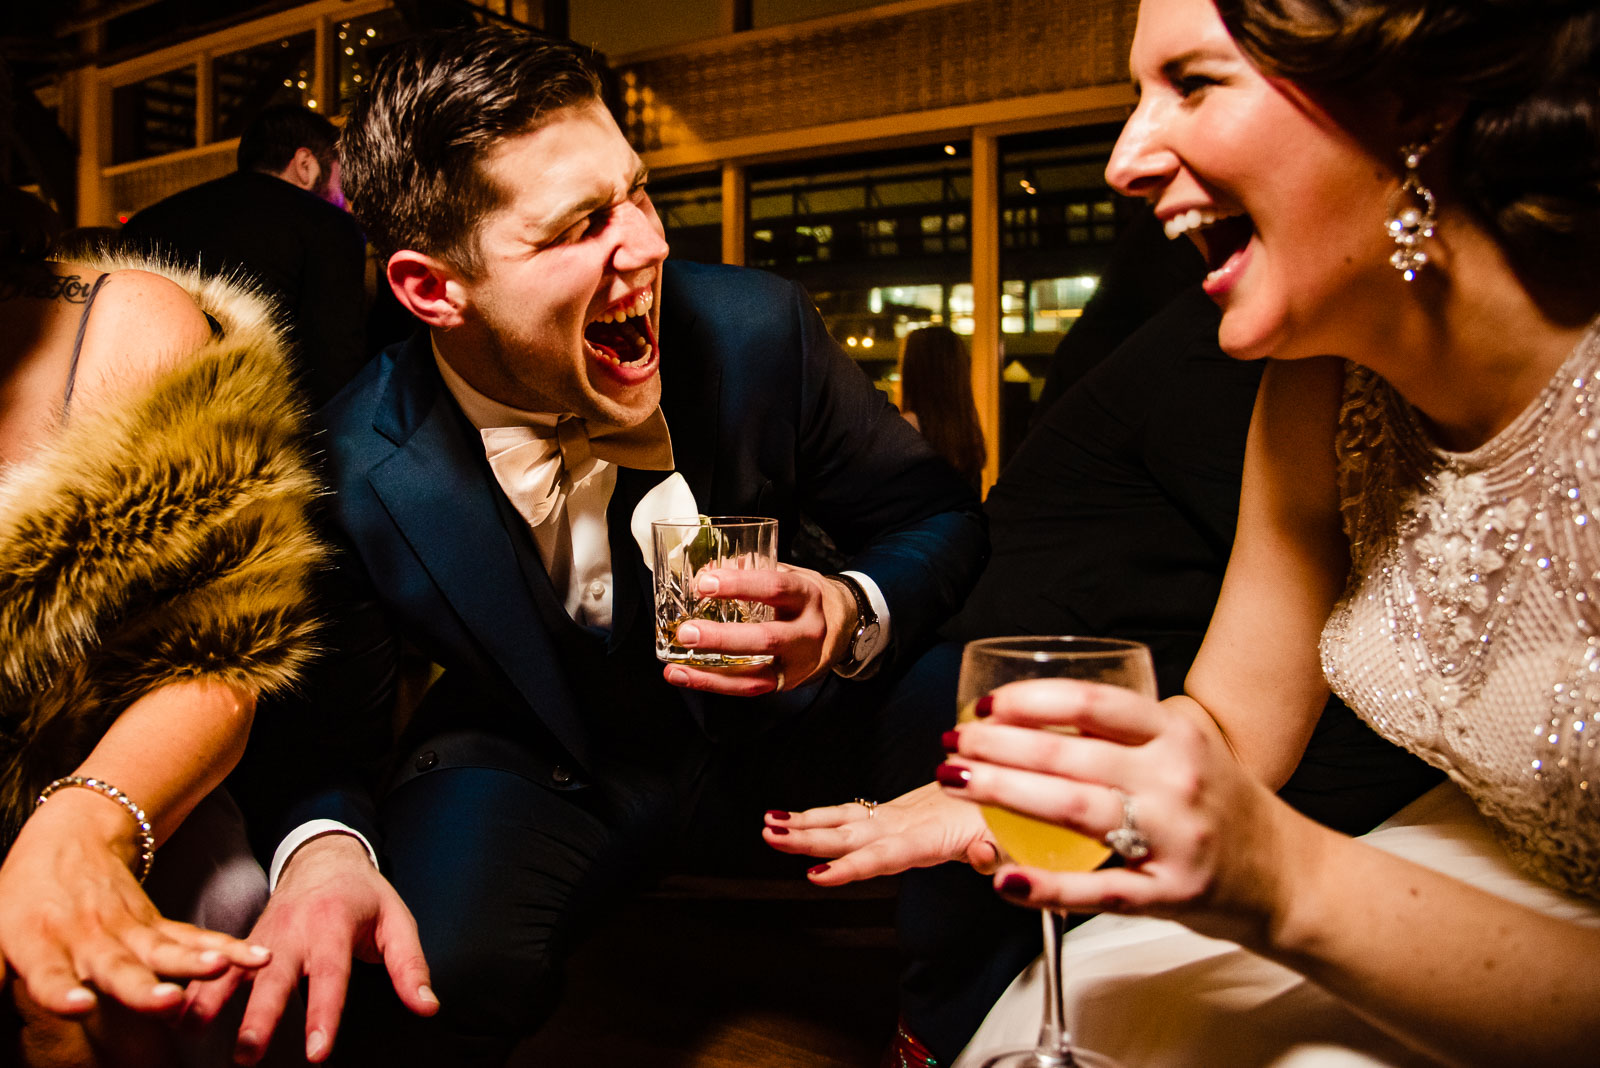 Bride and groom having a blast